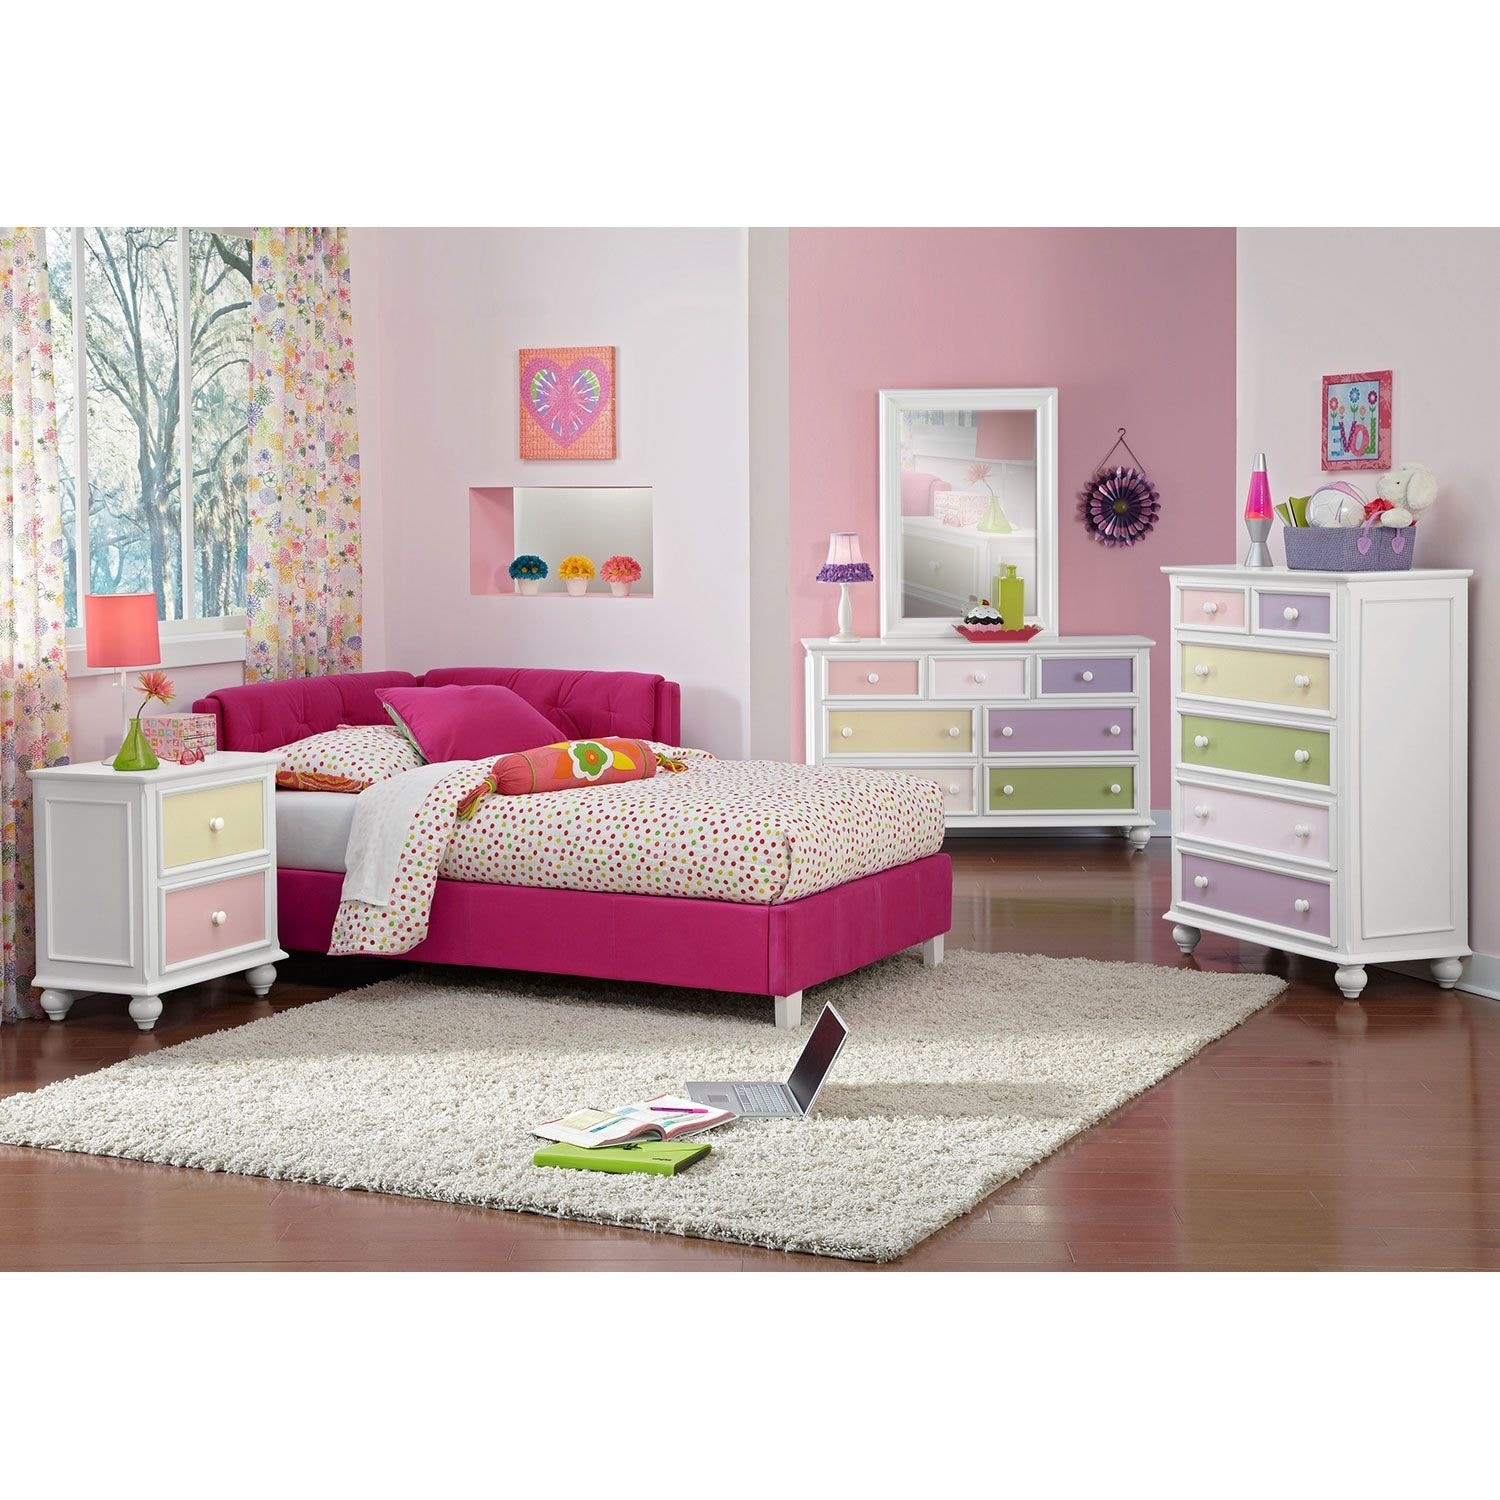 Jordan Twin Corner Bed - Pink | Value City Furniture and ...